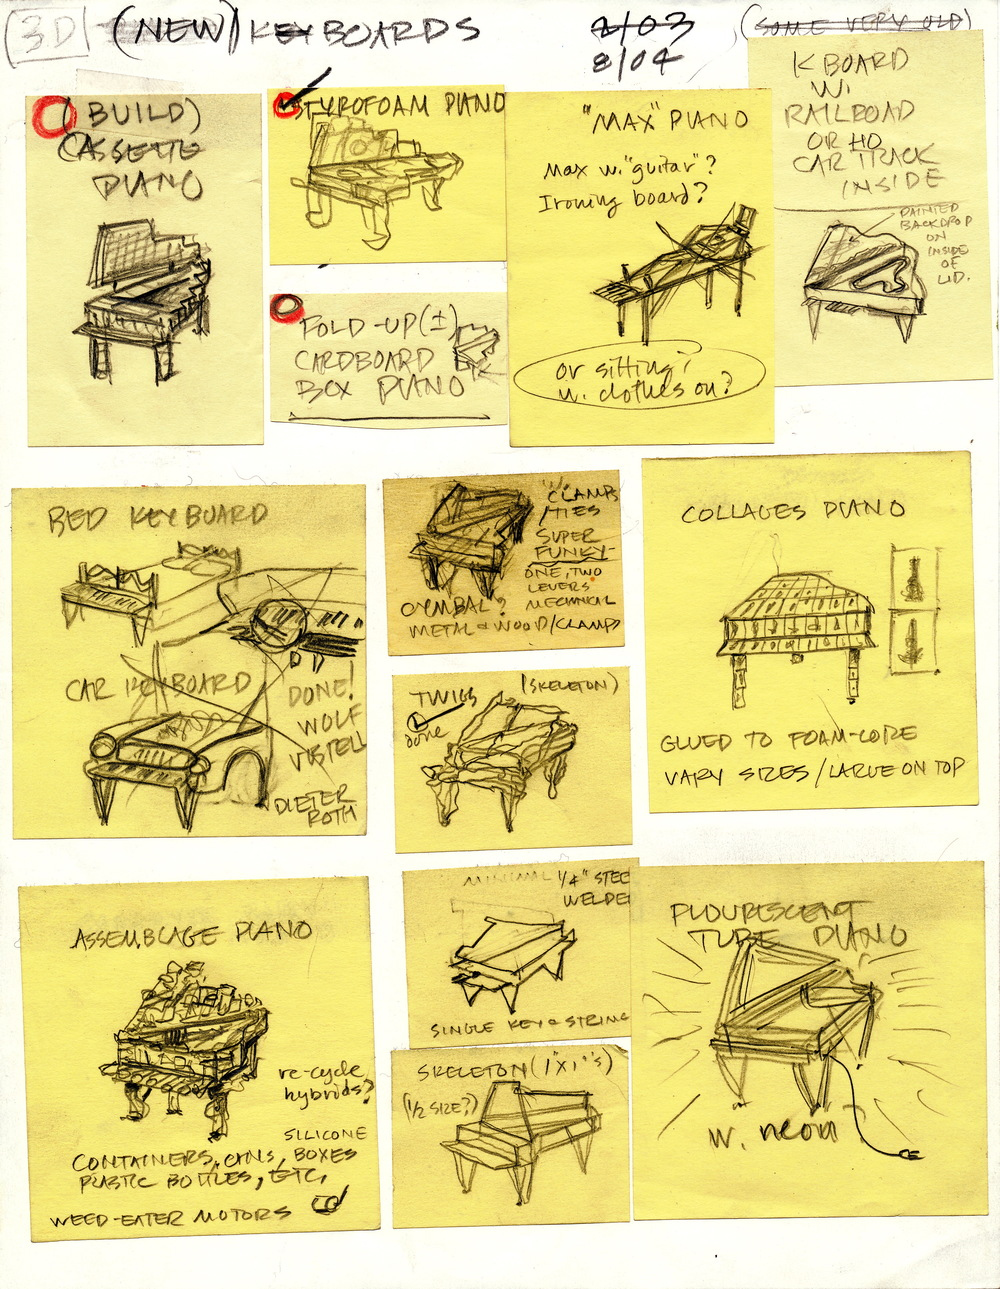 PIANO SKETCHES 4.jpg